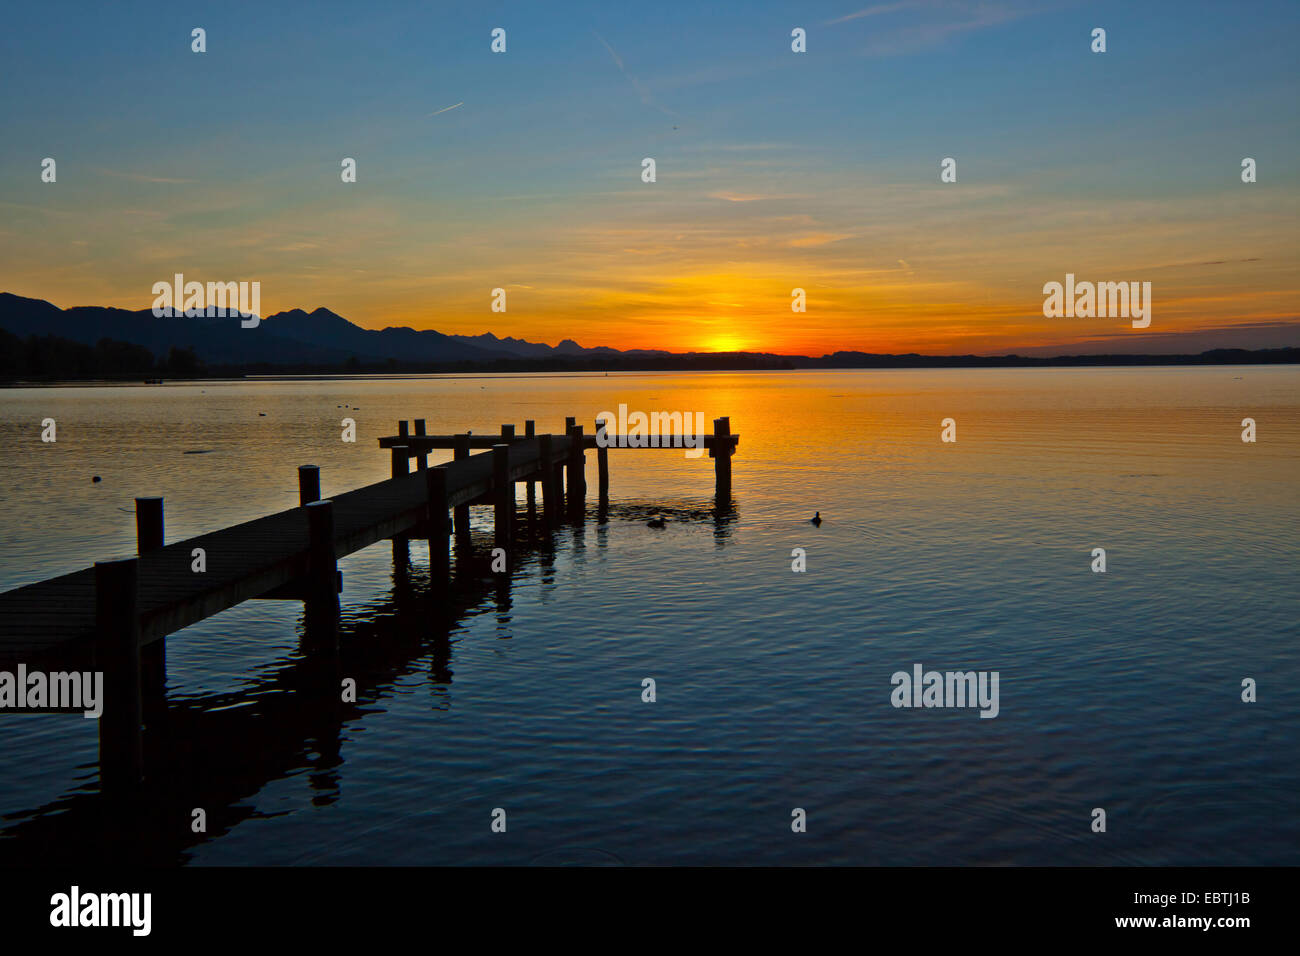 landing stage at the Chiemsee in the sunshine with Alp range in the background, Germany, Bavaria, Lake Chiemsee - Stock Image